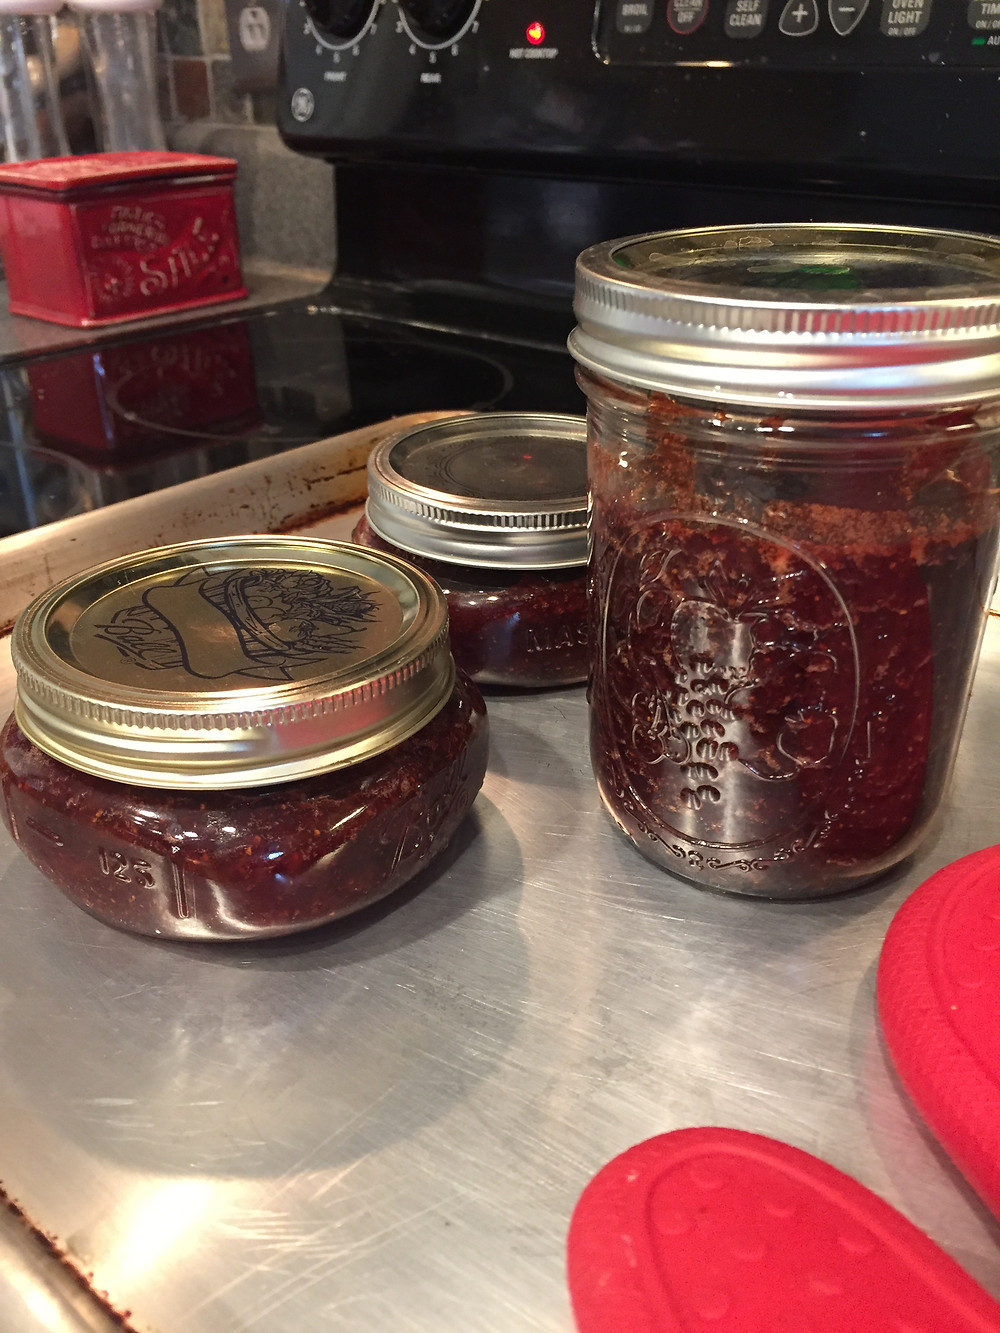 My first (successful) batch of strawberry jam!